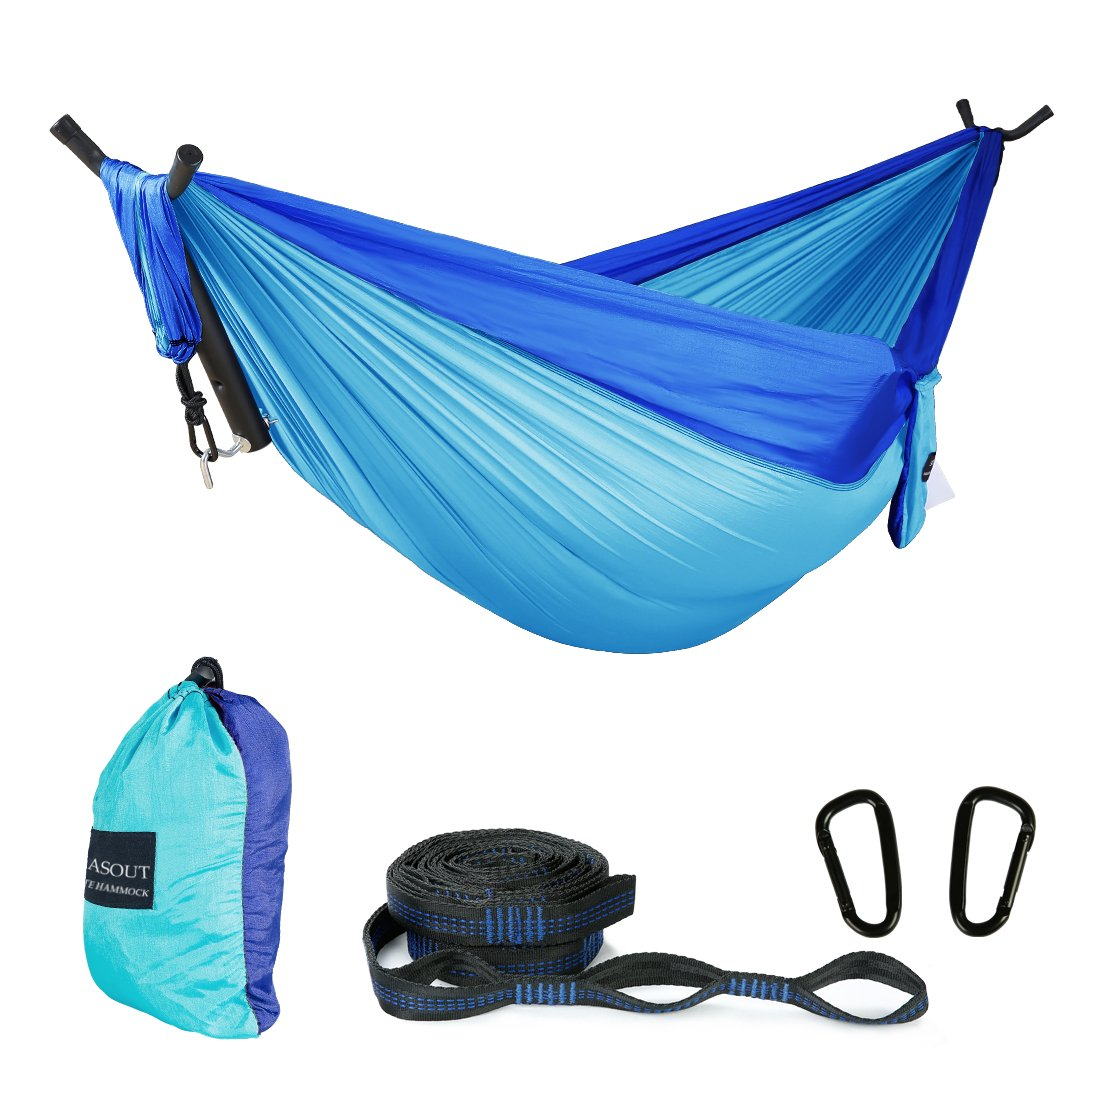 ASOUT Double Camping Hammock-Lightweight Nylon Portable Hammock with Hammock Tree Straps,for Outdoor Backpacking Travel.(Dark Blue/Lake Blue, Double) by ASOUT